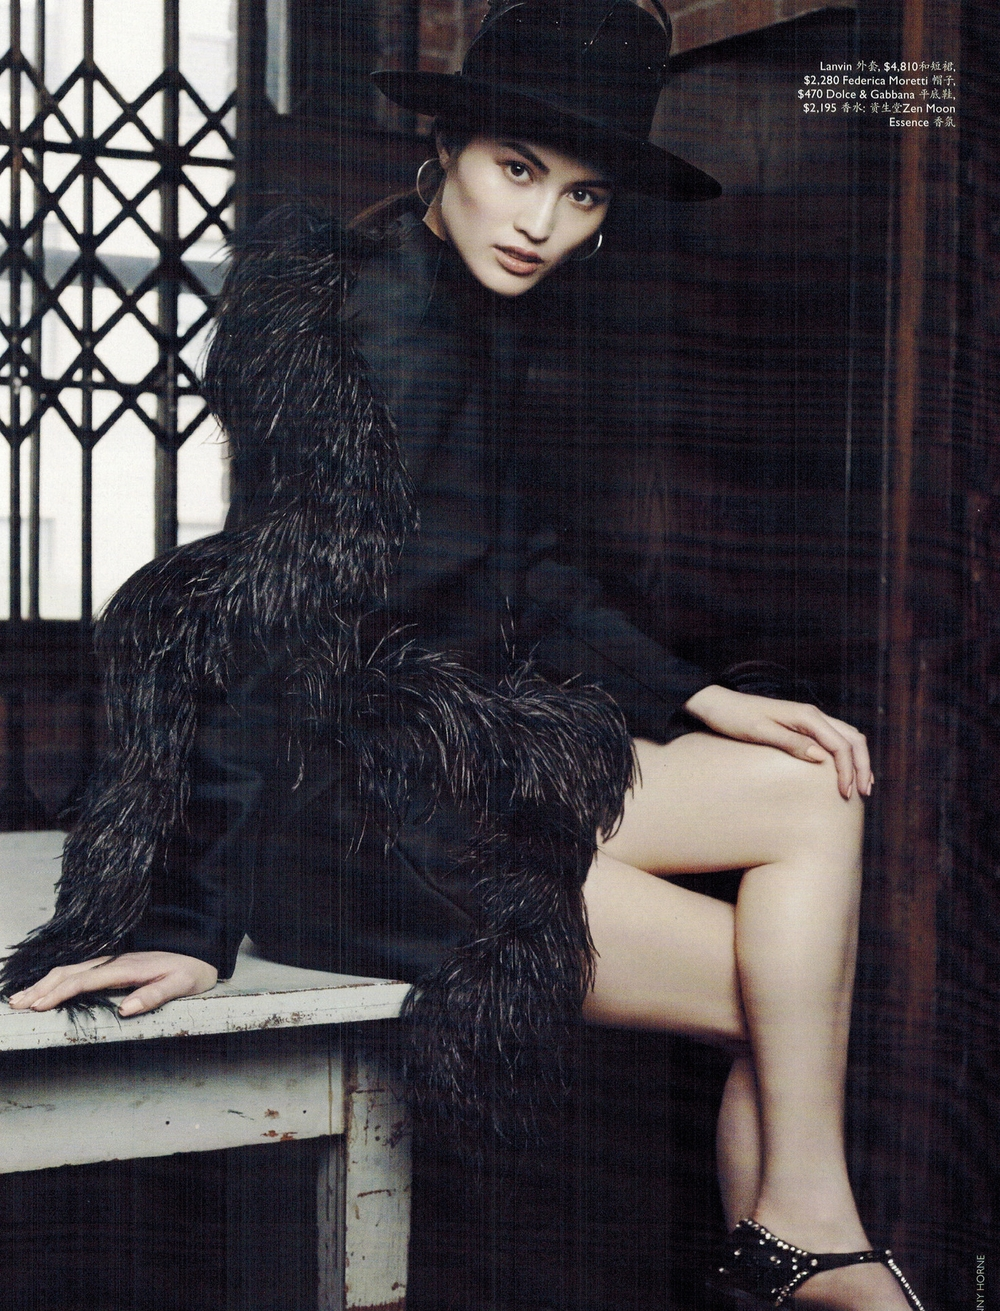 sui he on vogue australia photo shoot by benny horne and county fair productions 1